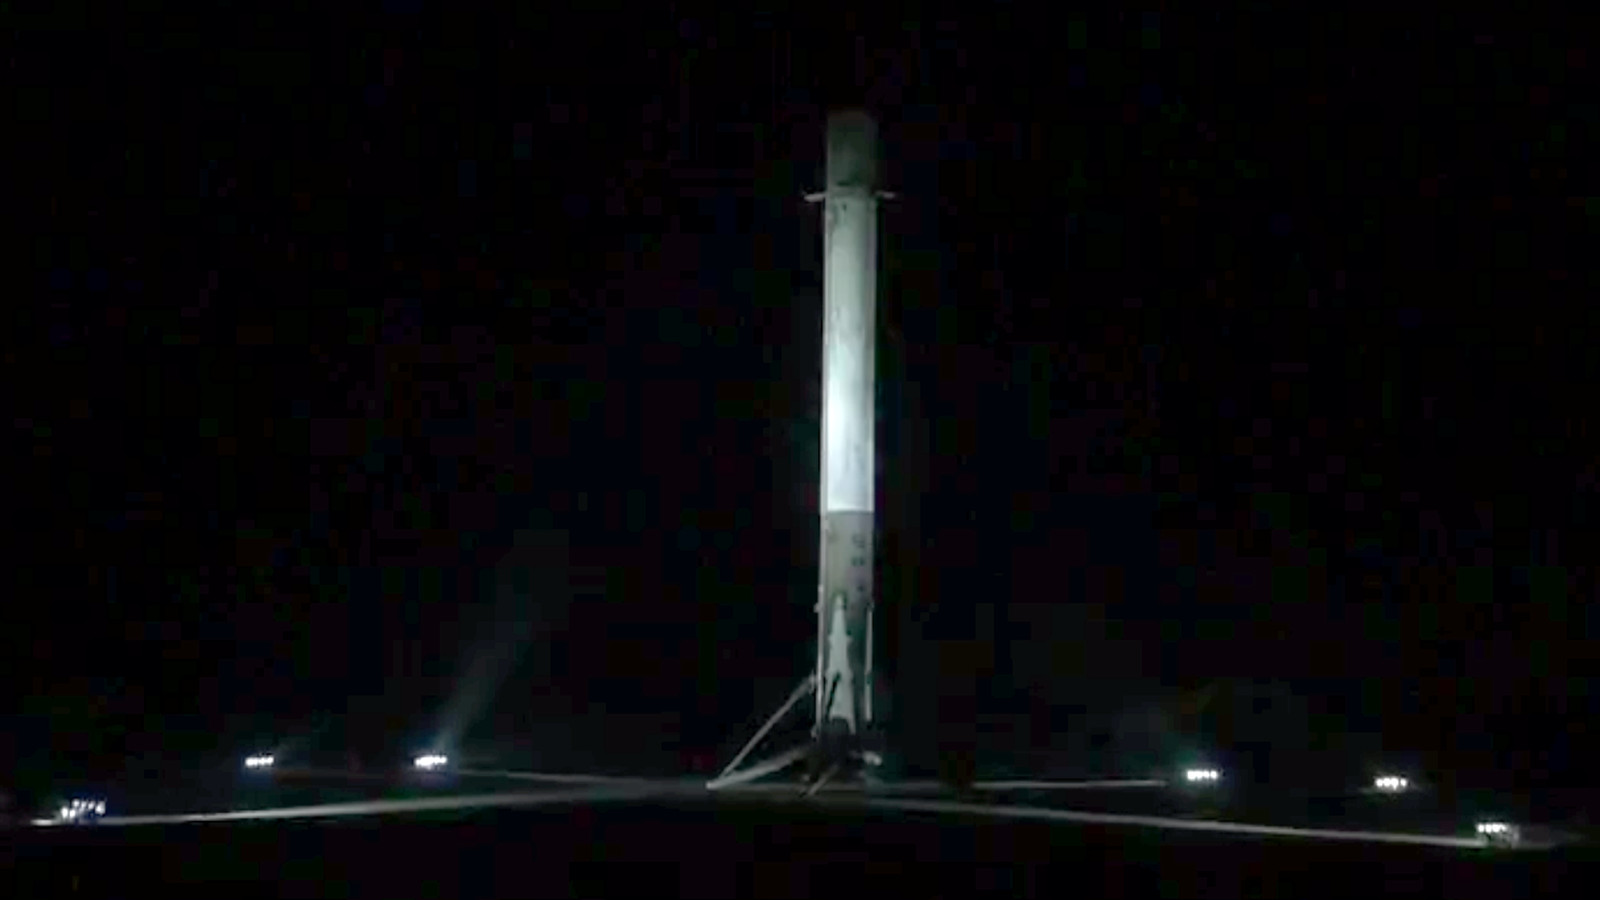 SpaceX successfully lands Falcon 9 rocket on solid ground for the second time | The Verge